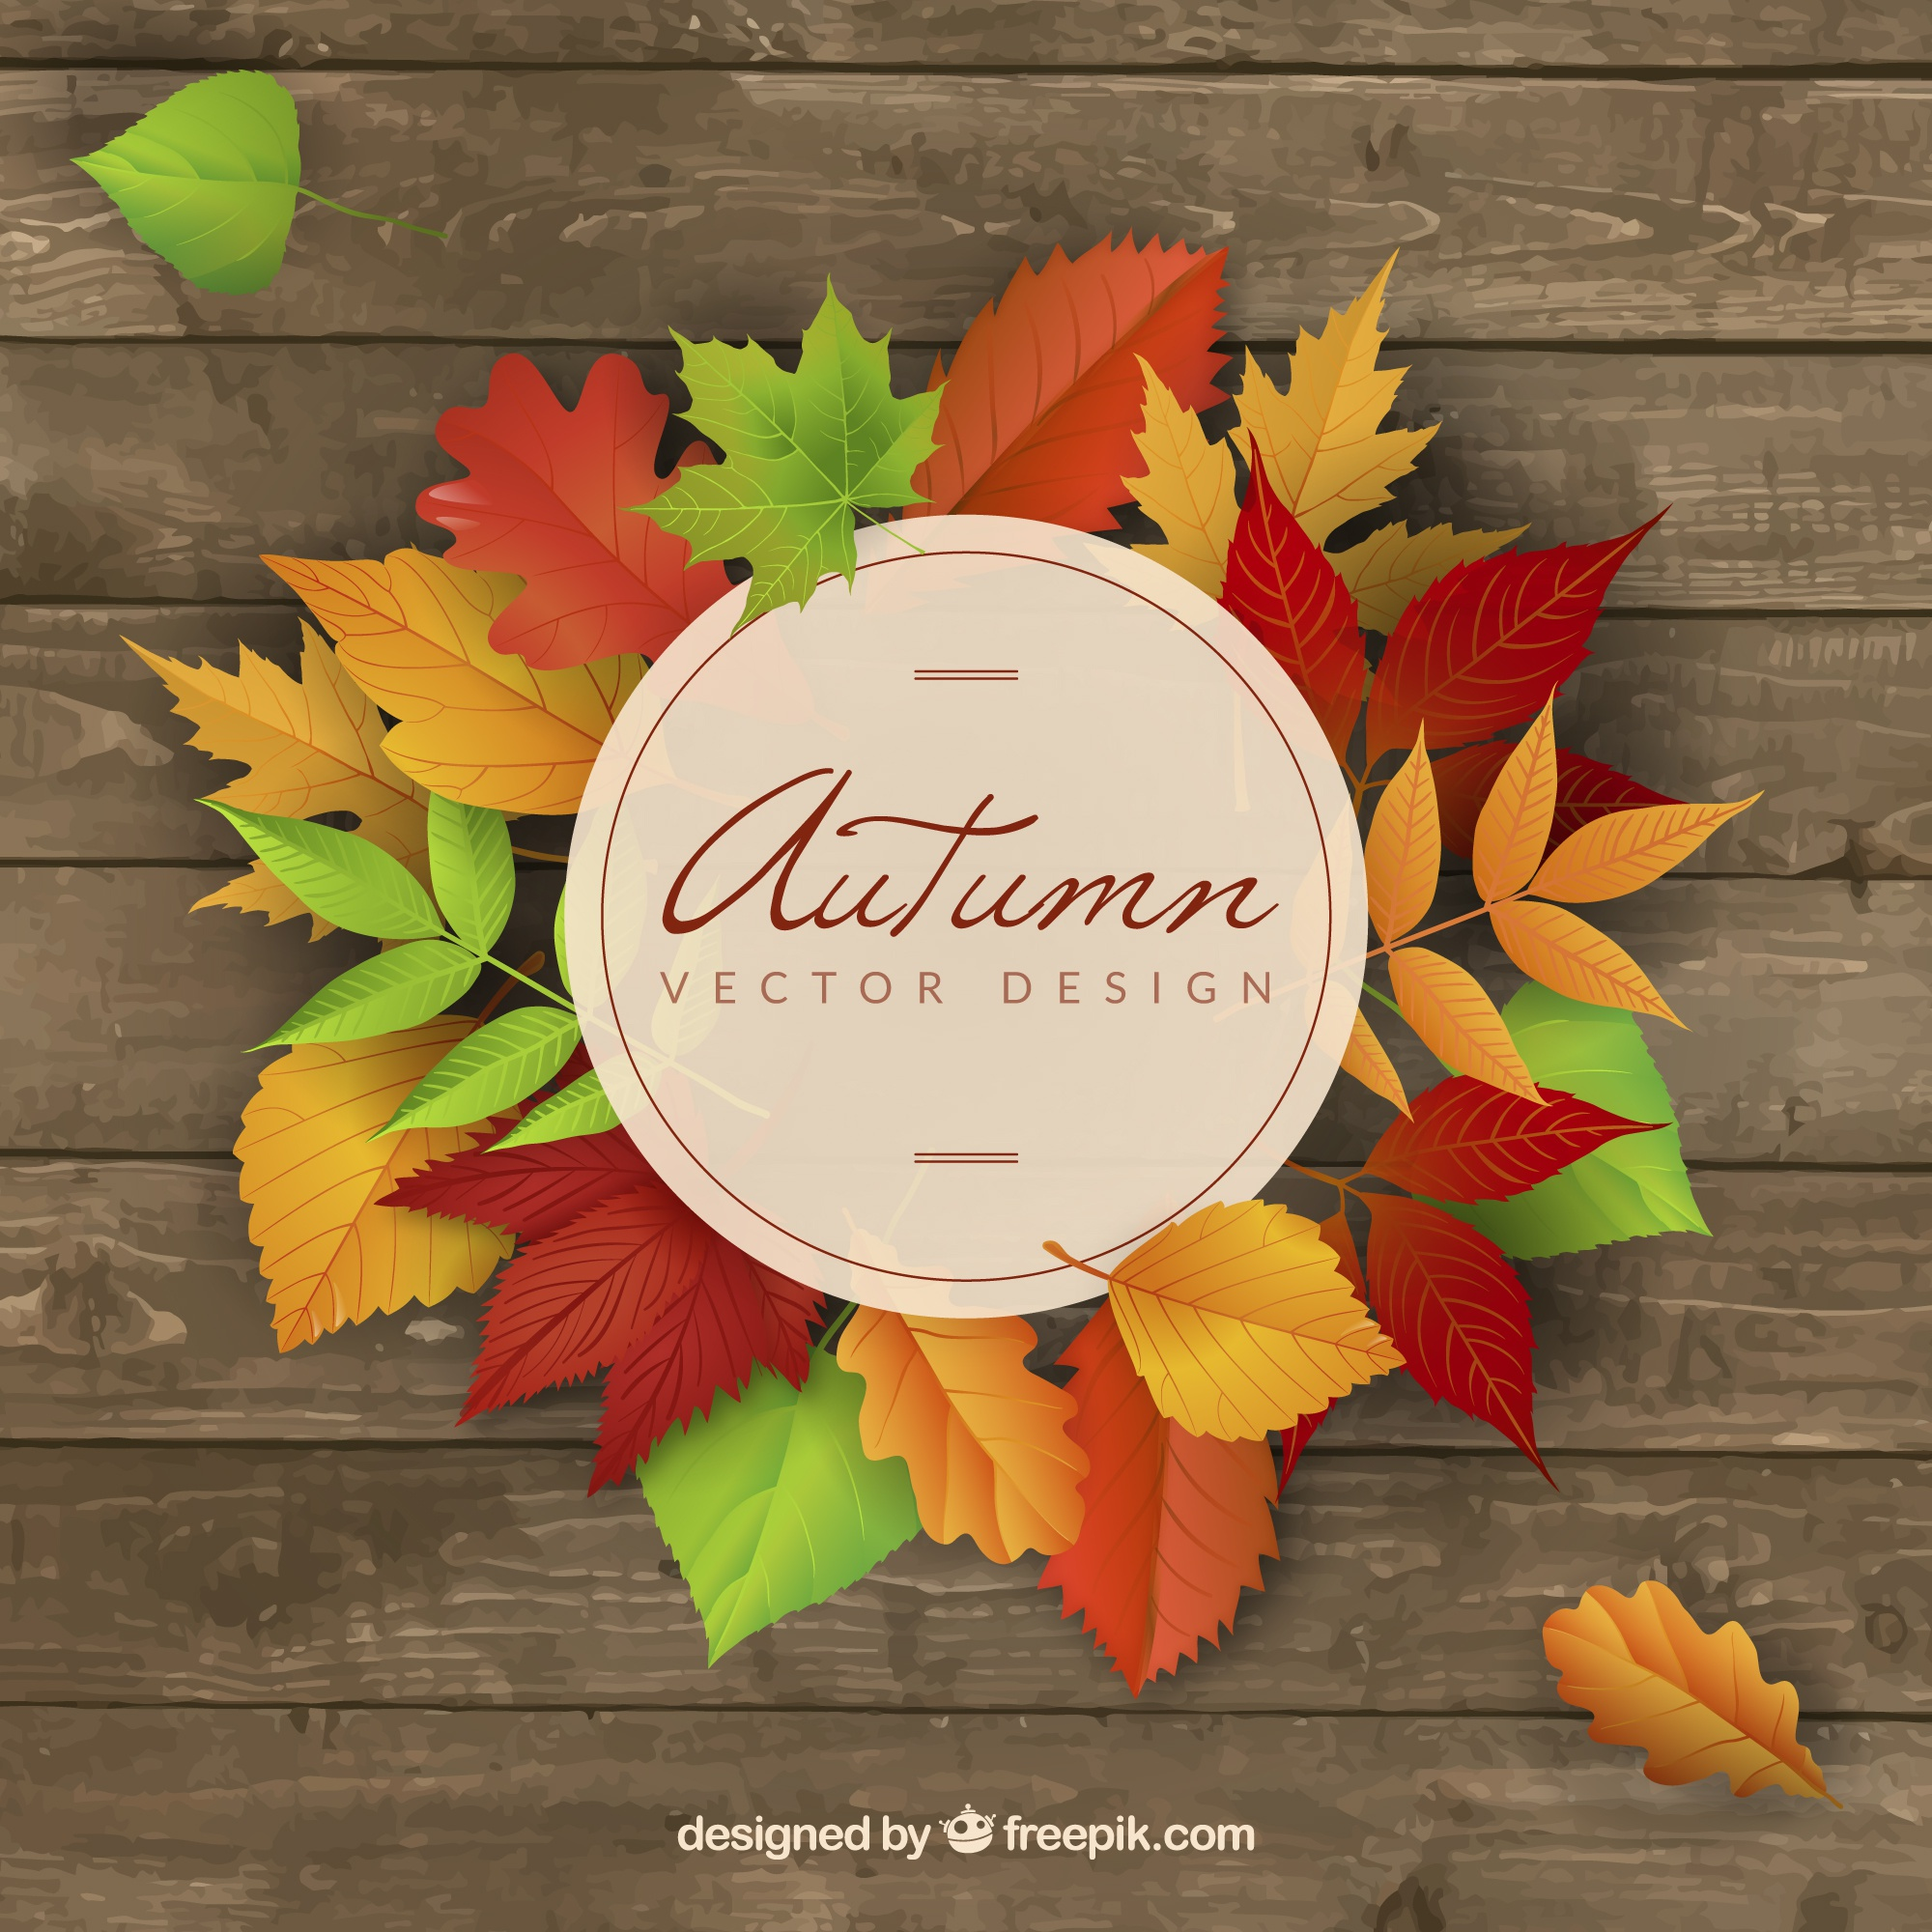 Wooden background with colored autumnal leaves